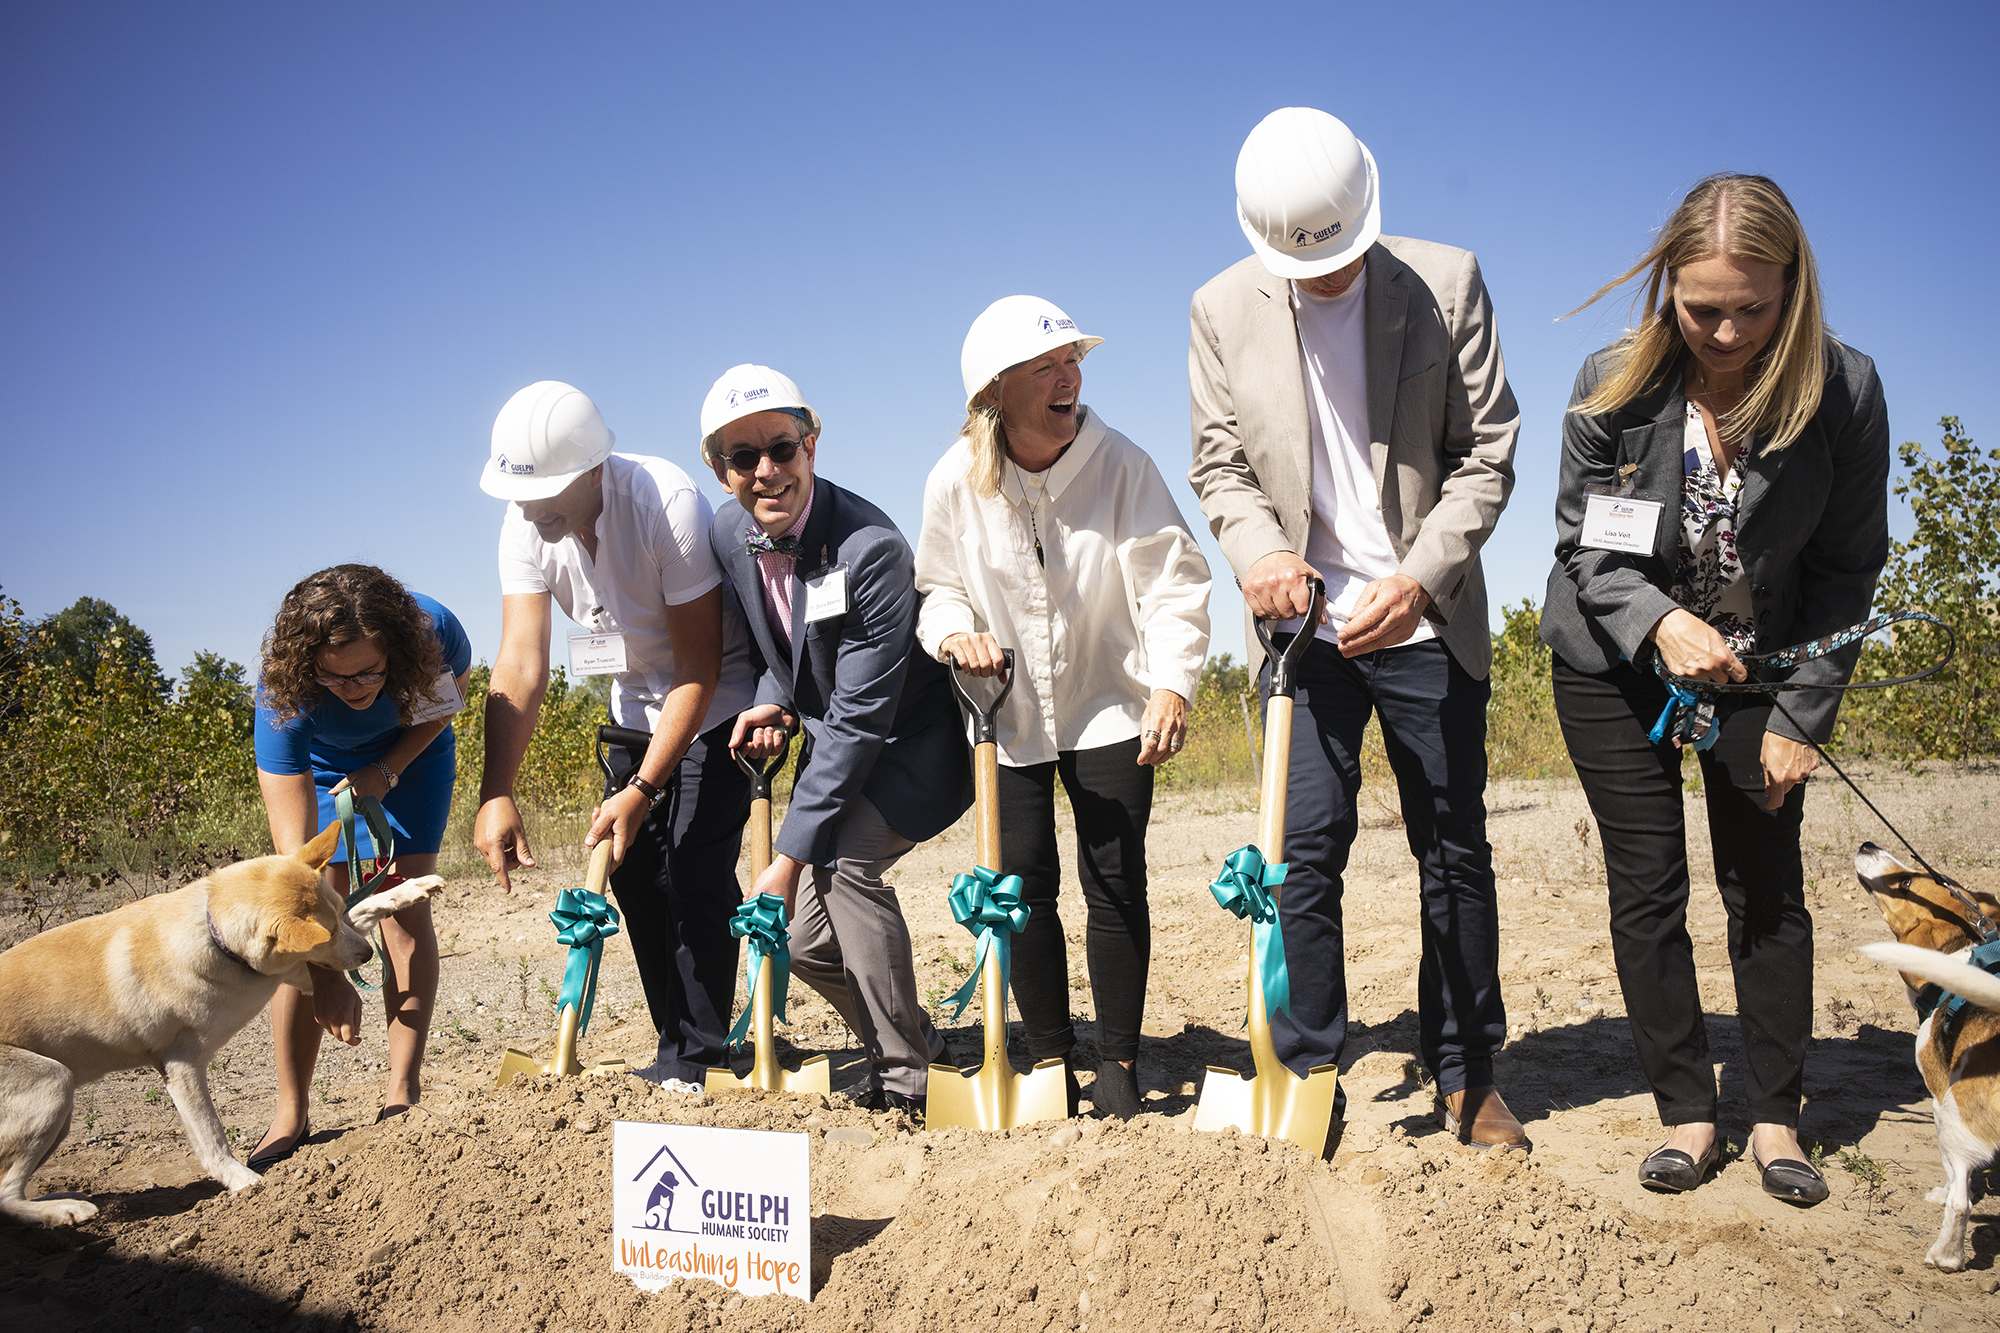 Guelph Humane Society breaks ground on its new home (8 photos)